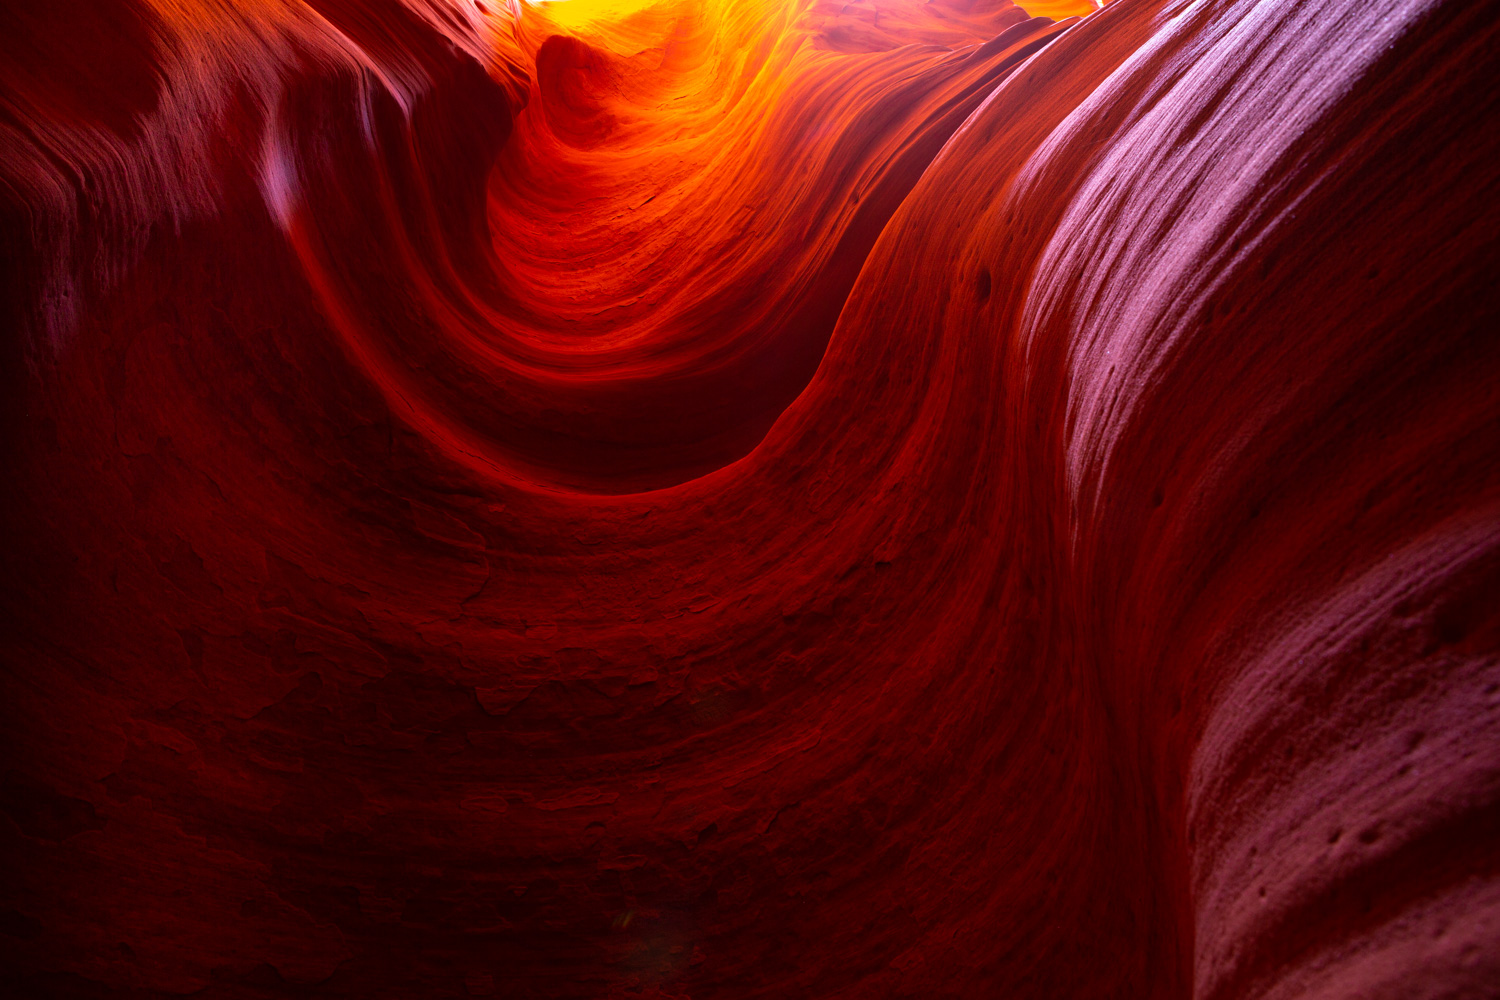 Image: Slot Canyon, Arizona, USA © Jeremy Flint